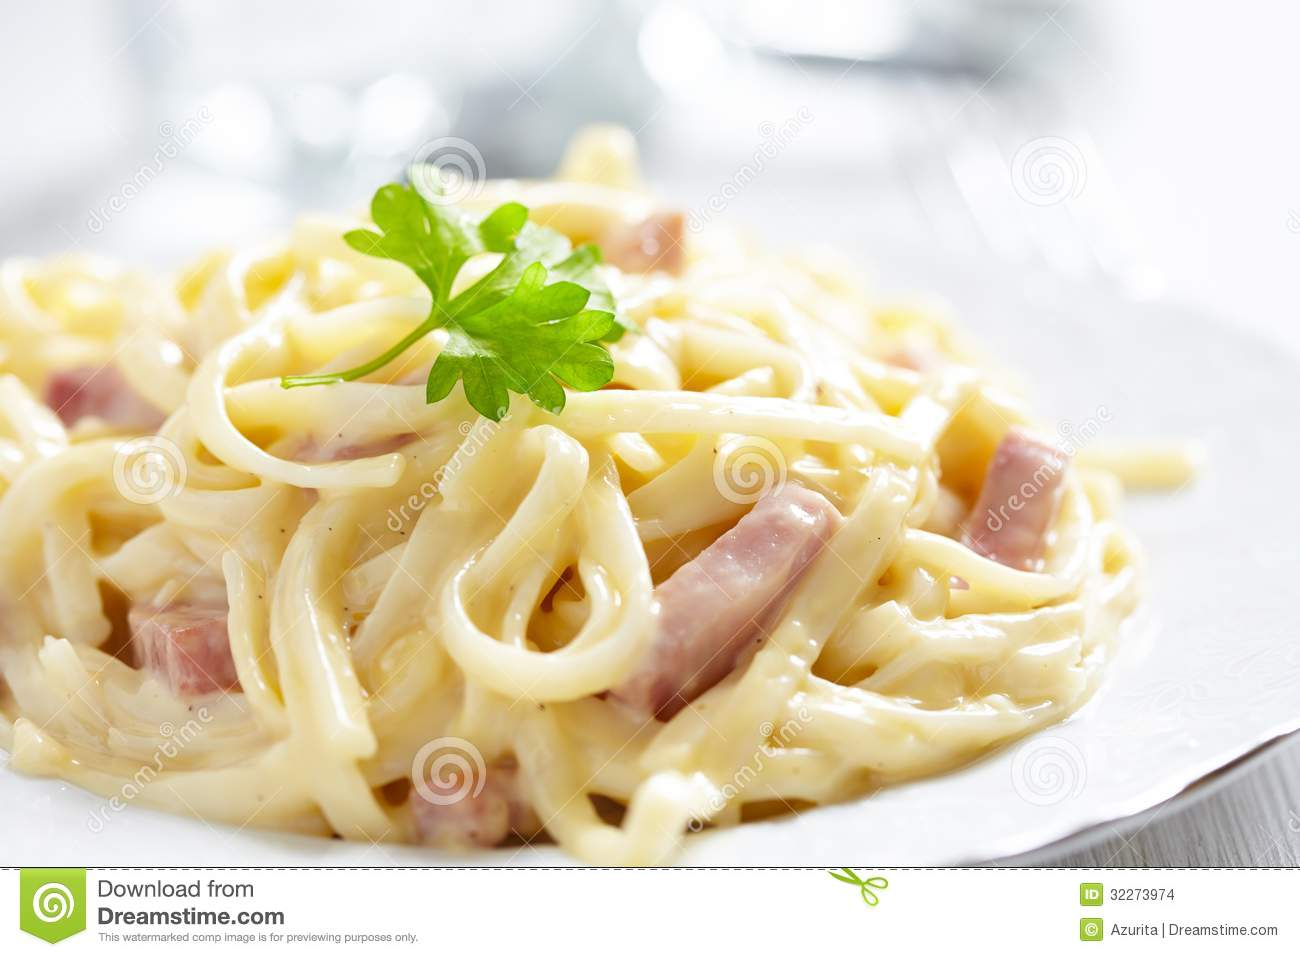 Pasta Carbonara with ham and cheese. See my other works in portfolio.